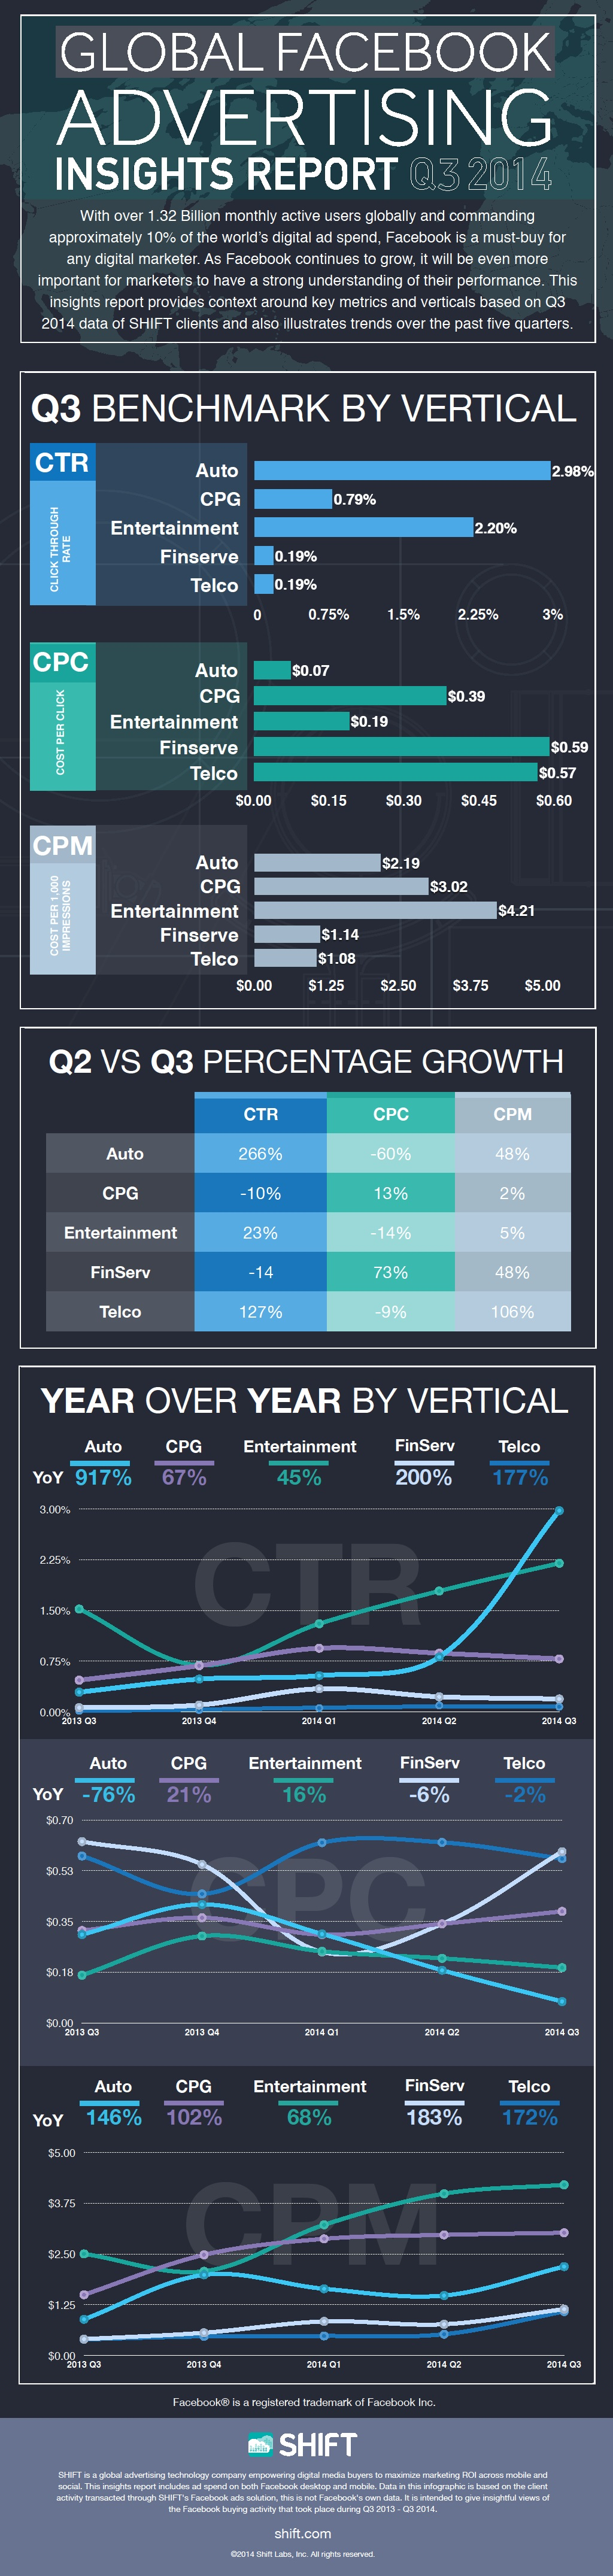 Shift3Q2014Infographic